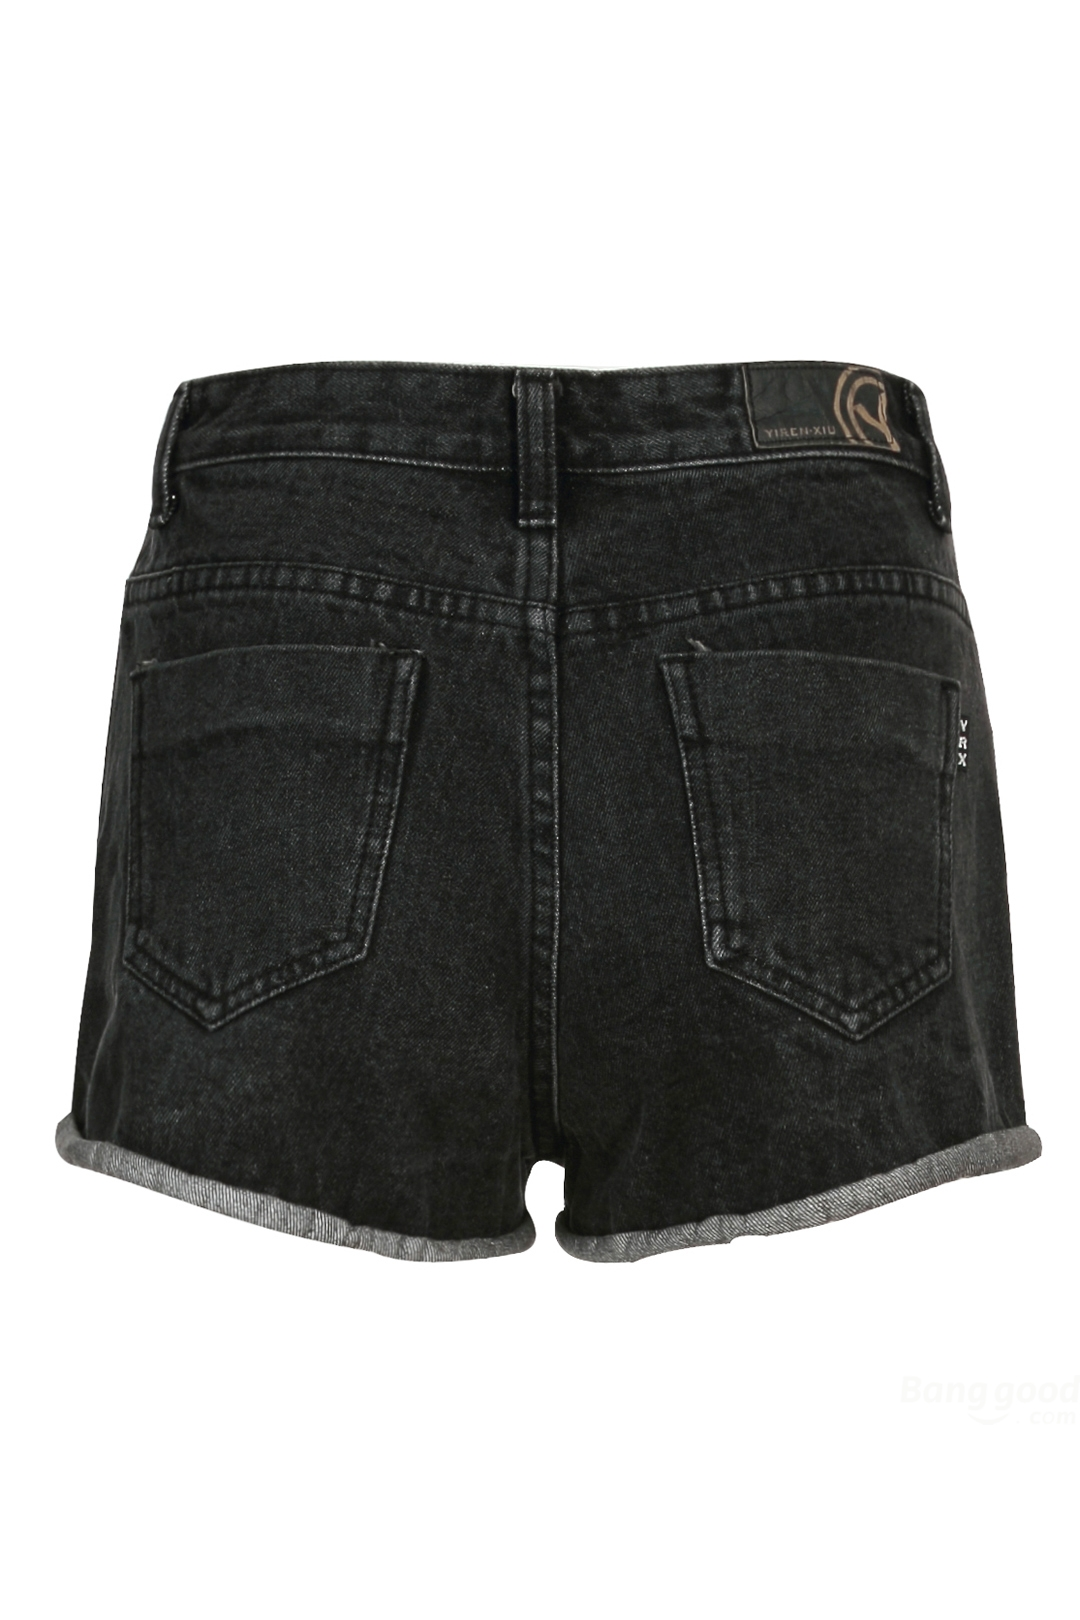 8a363e23 Women's Denim Shorts Sweet & Simple Vintage Black Fringe Ripped on ...